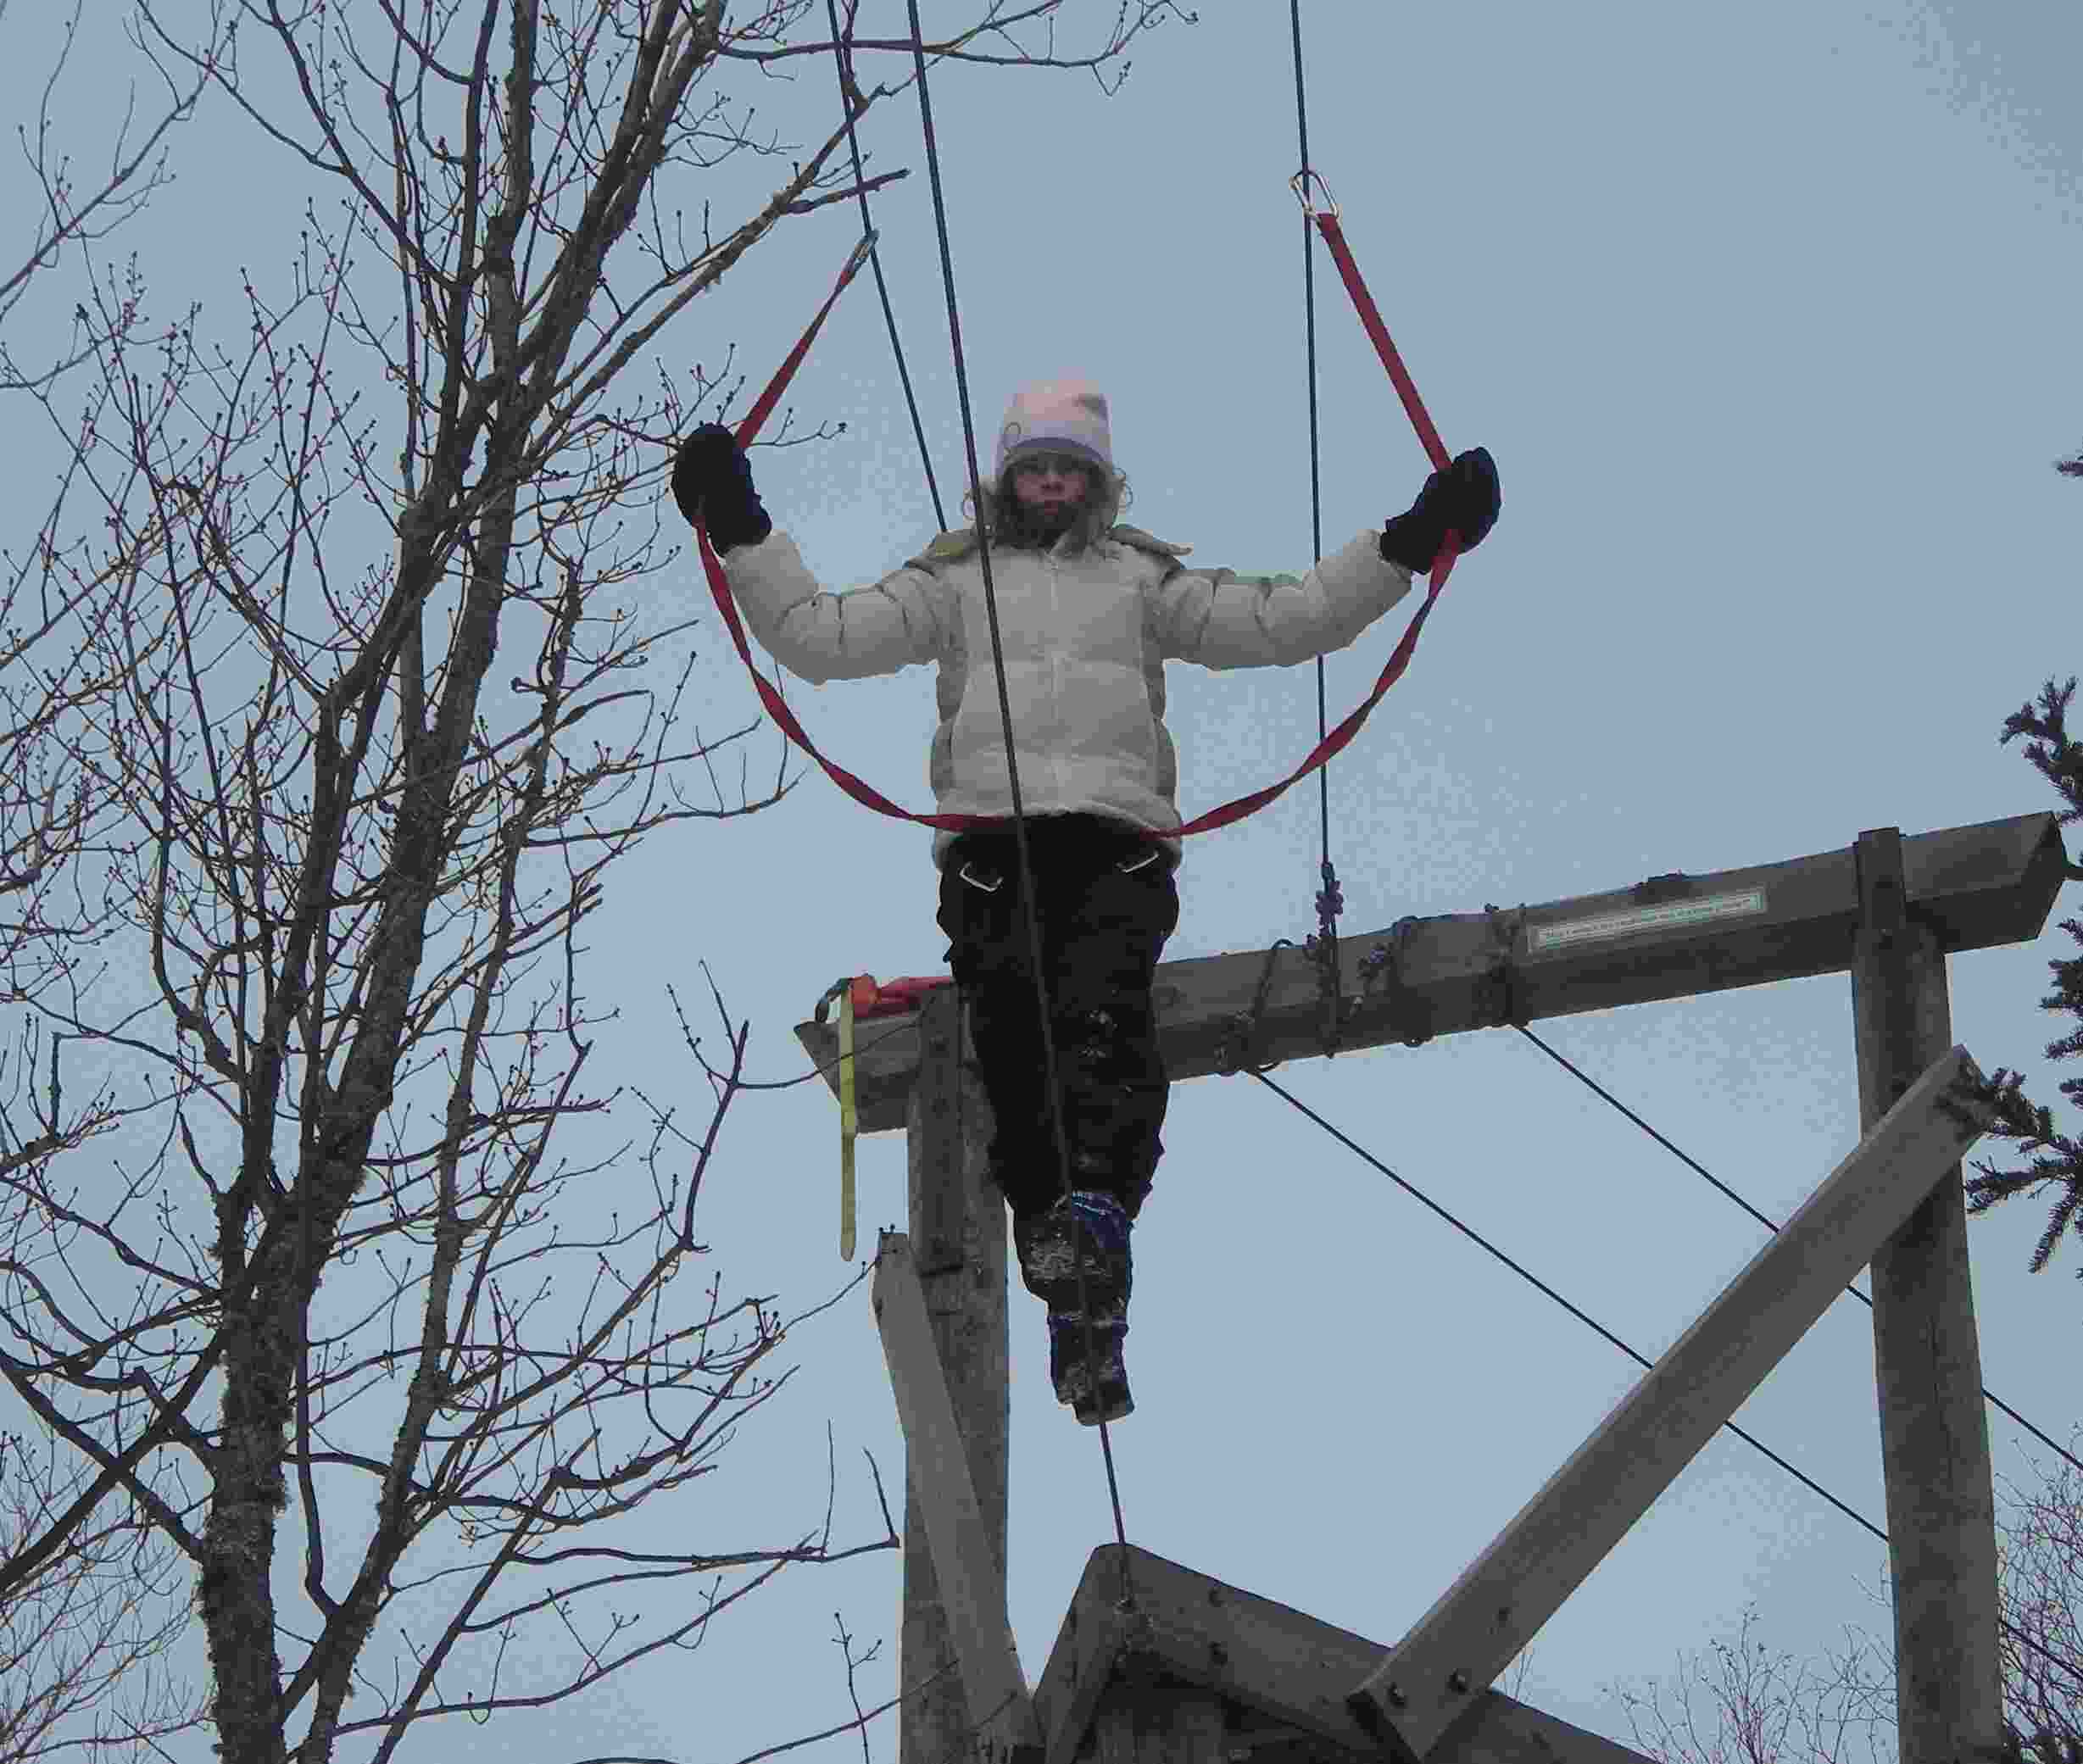 Annette on the High Wire